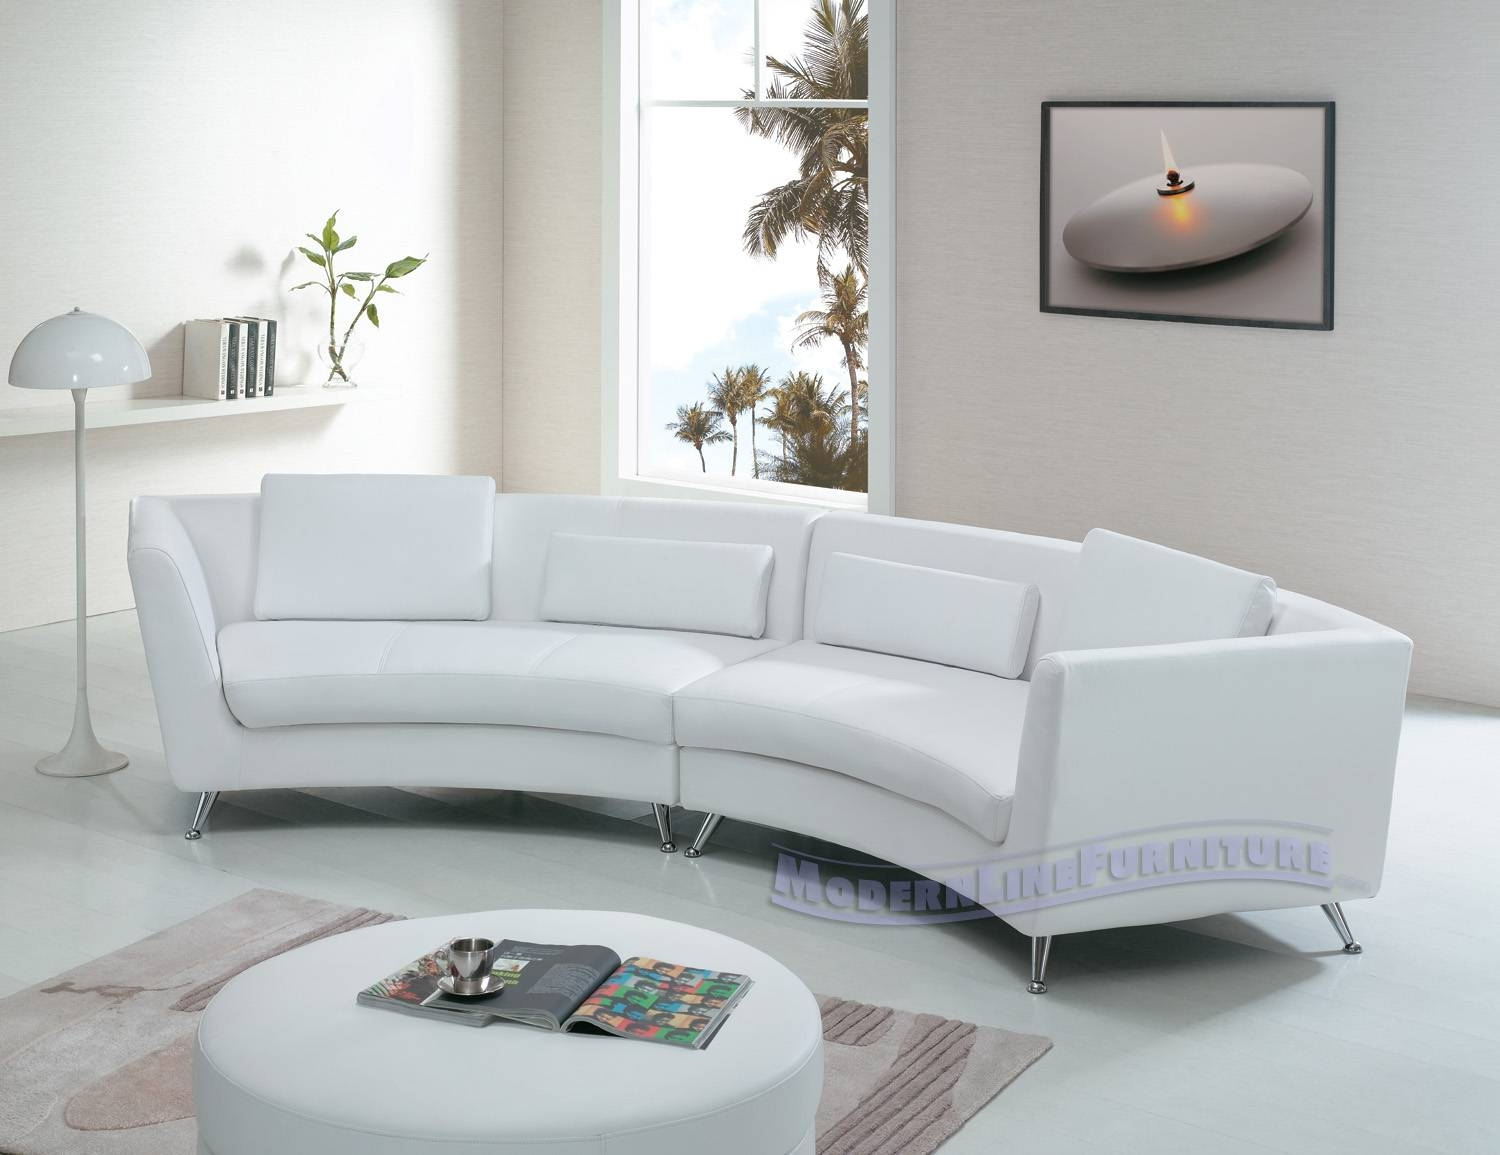 Modern Line Furniture - Commercial Furniture - Custom Made intended for Oval Sofas (Image 19 of 30)